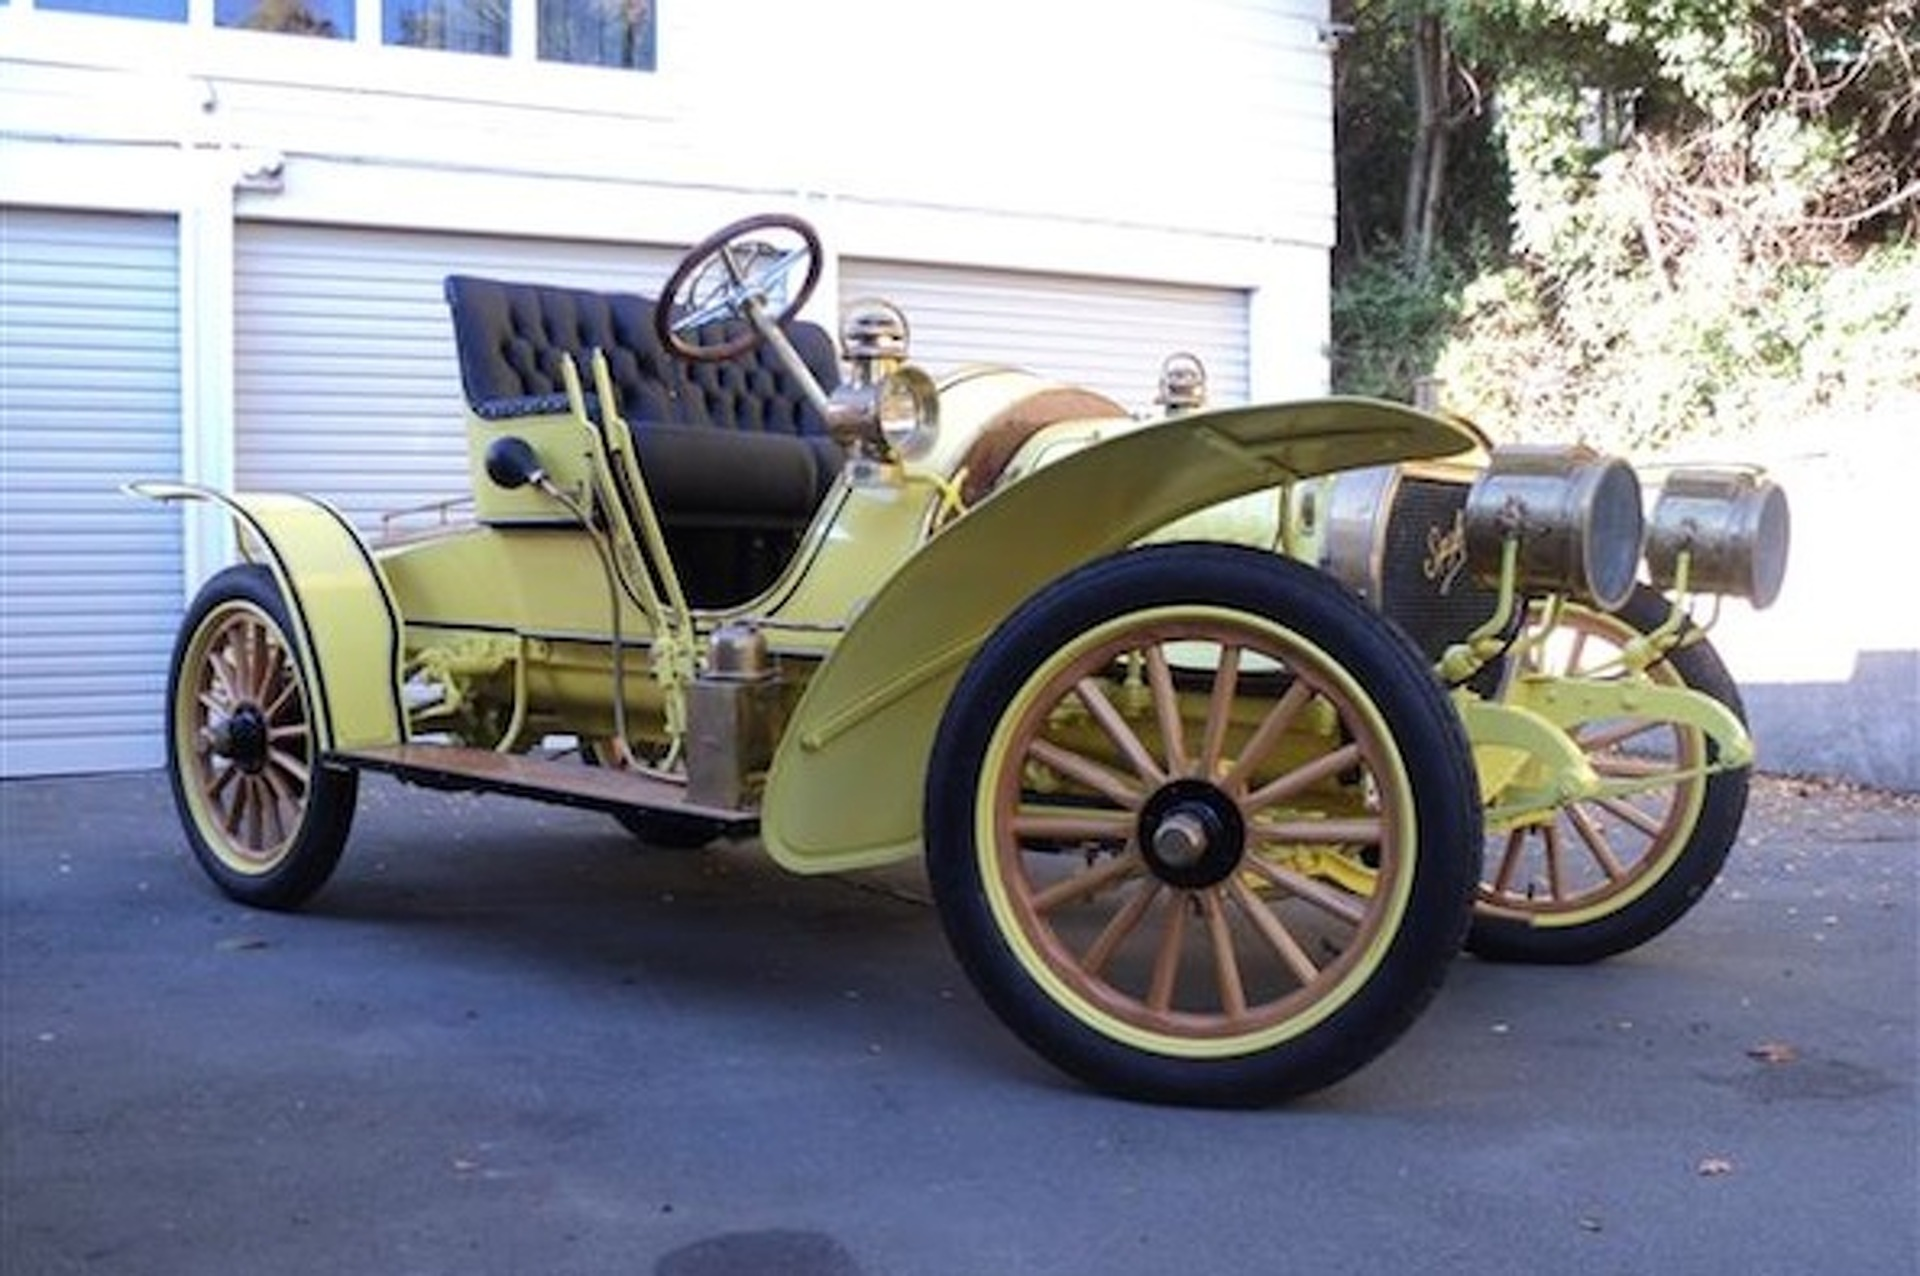 Spyker Gives a Closer Look at his 1907 Spyker Restoration Project.